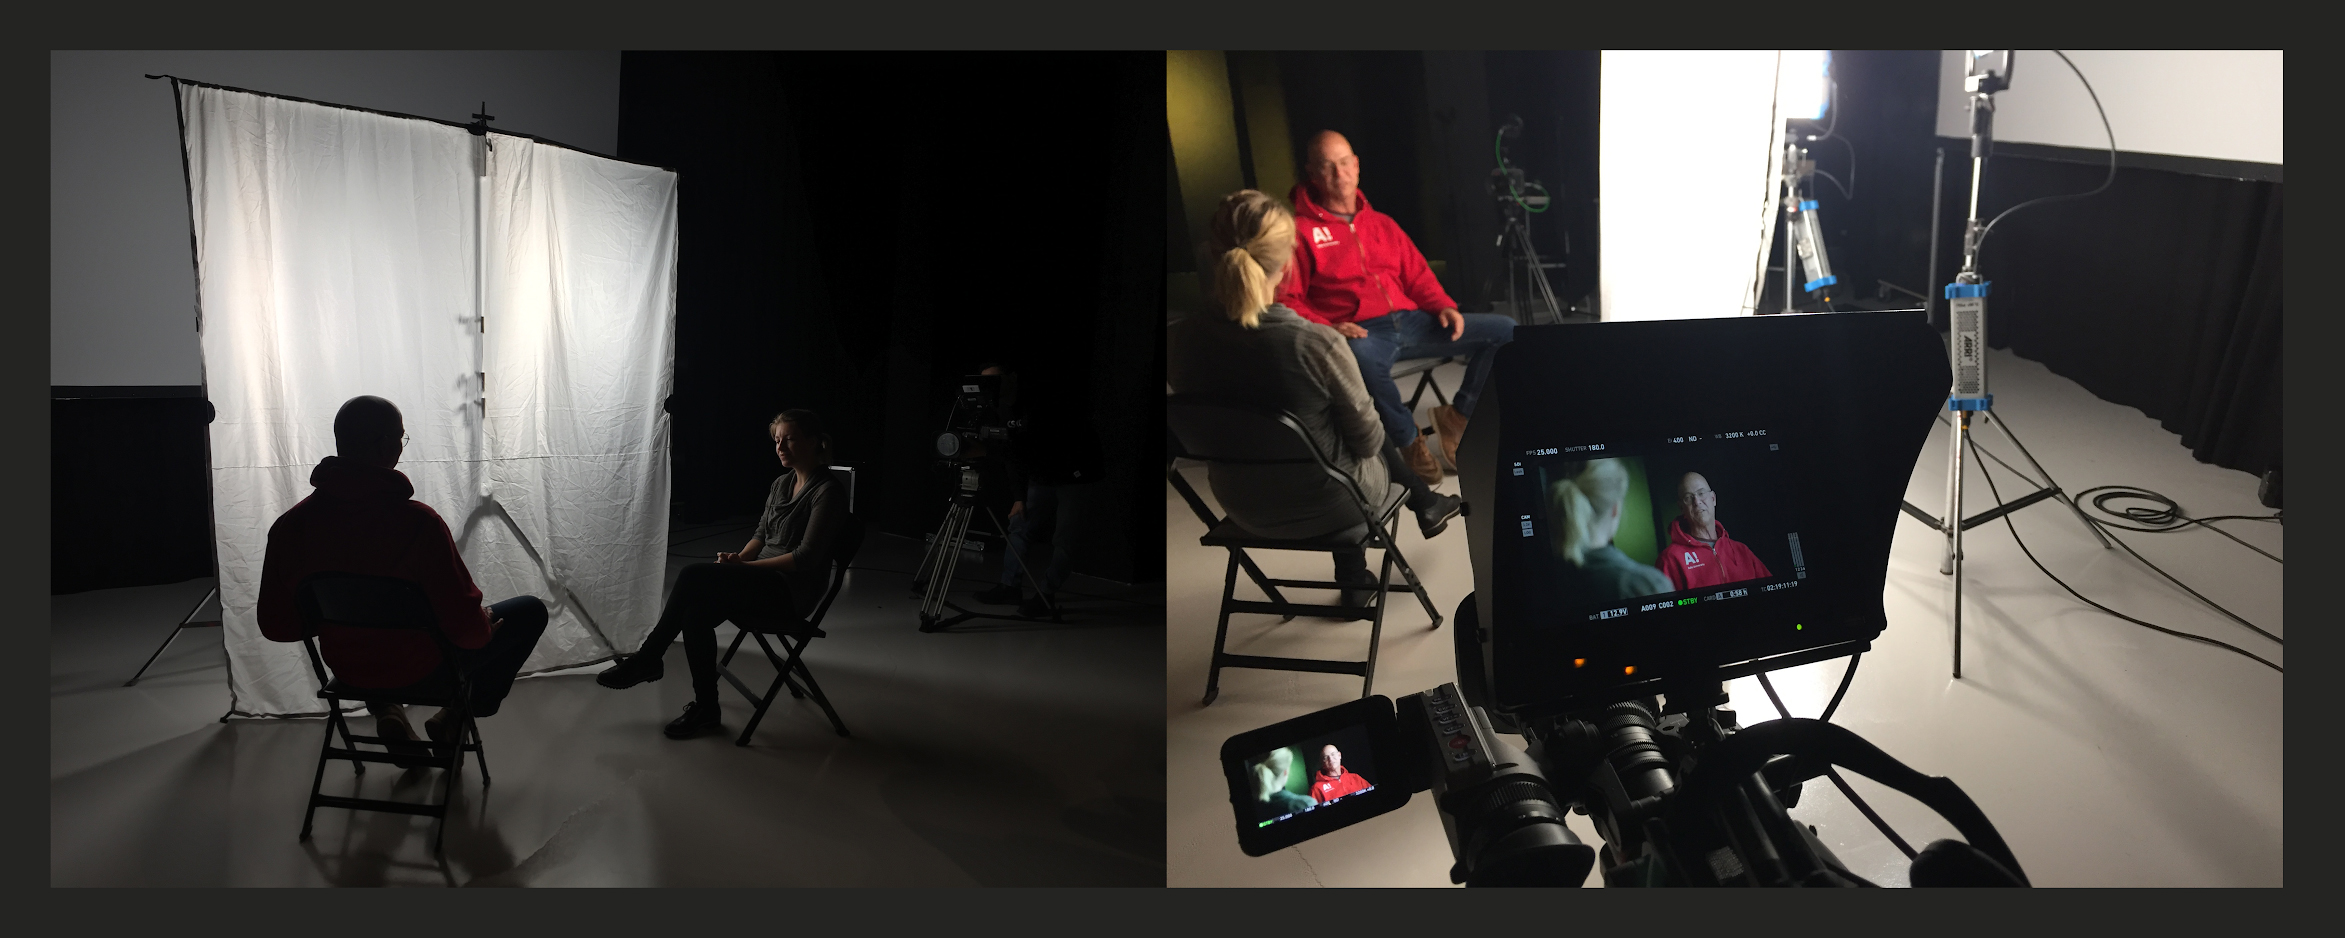 Two studio setups: one with the white screen and the other with close-up of a videocamera.